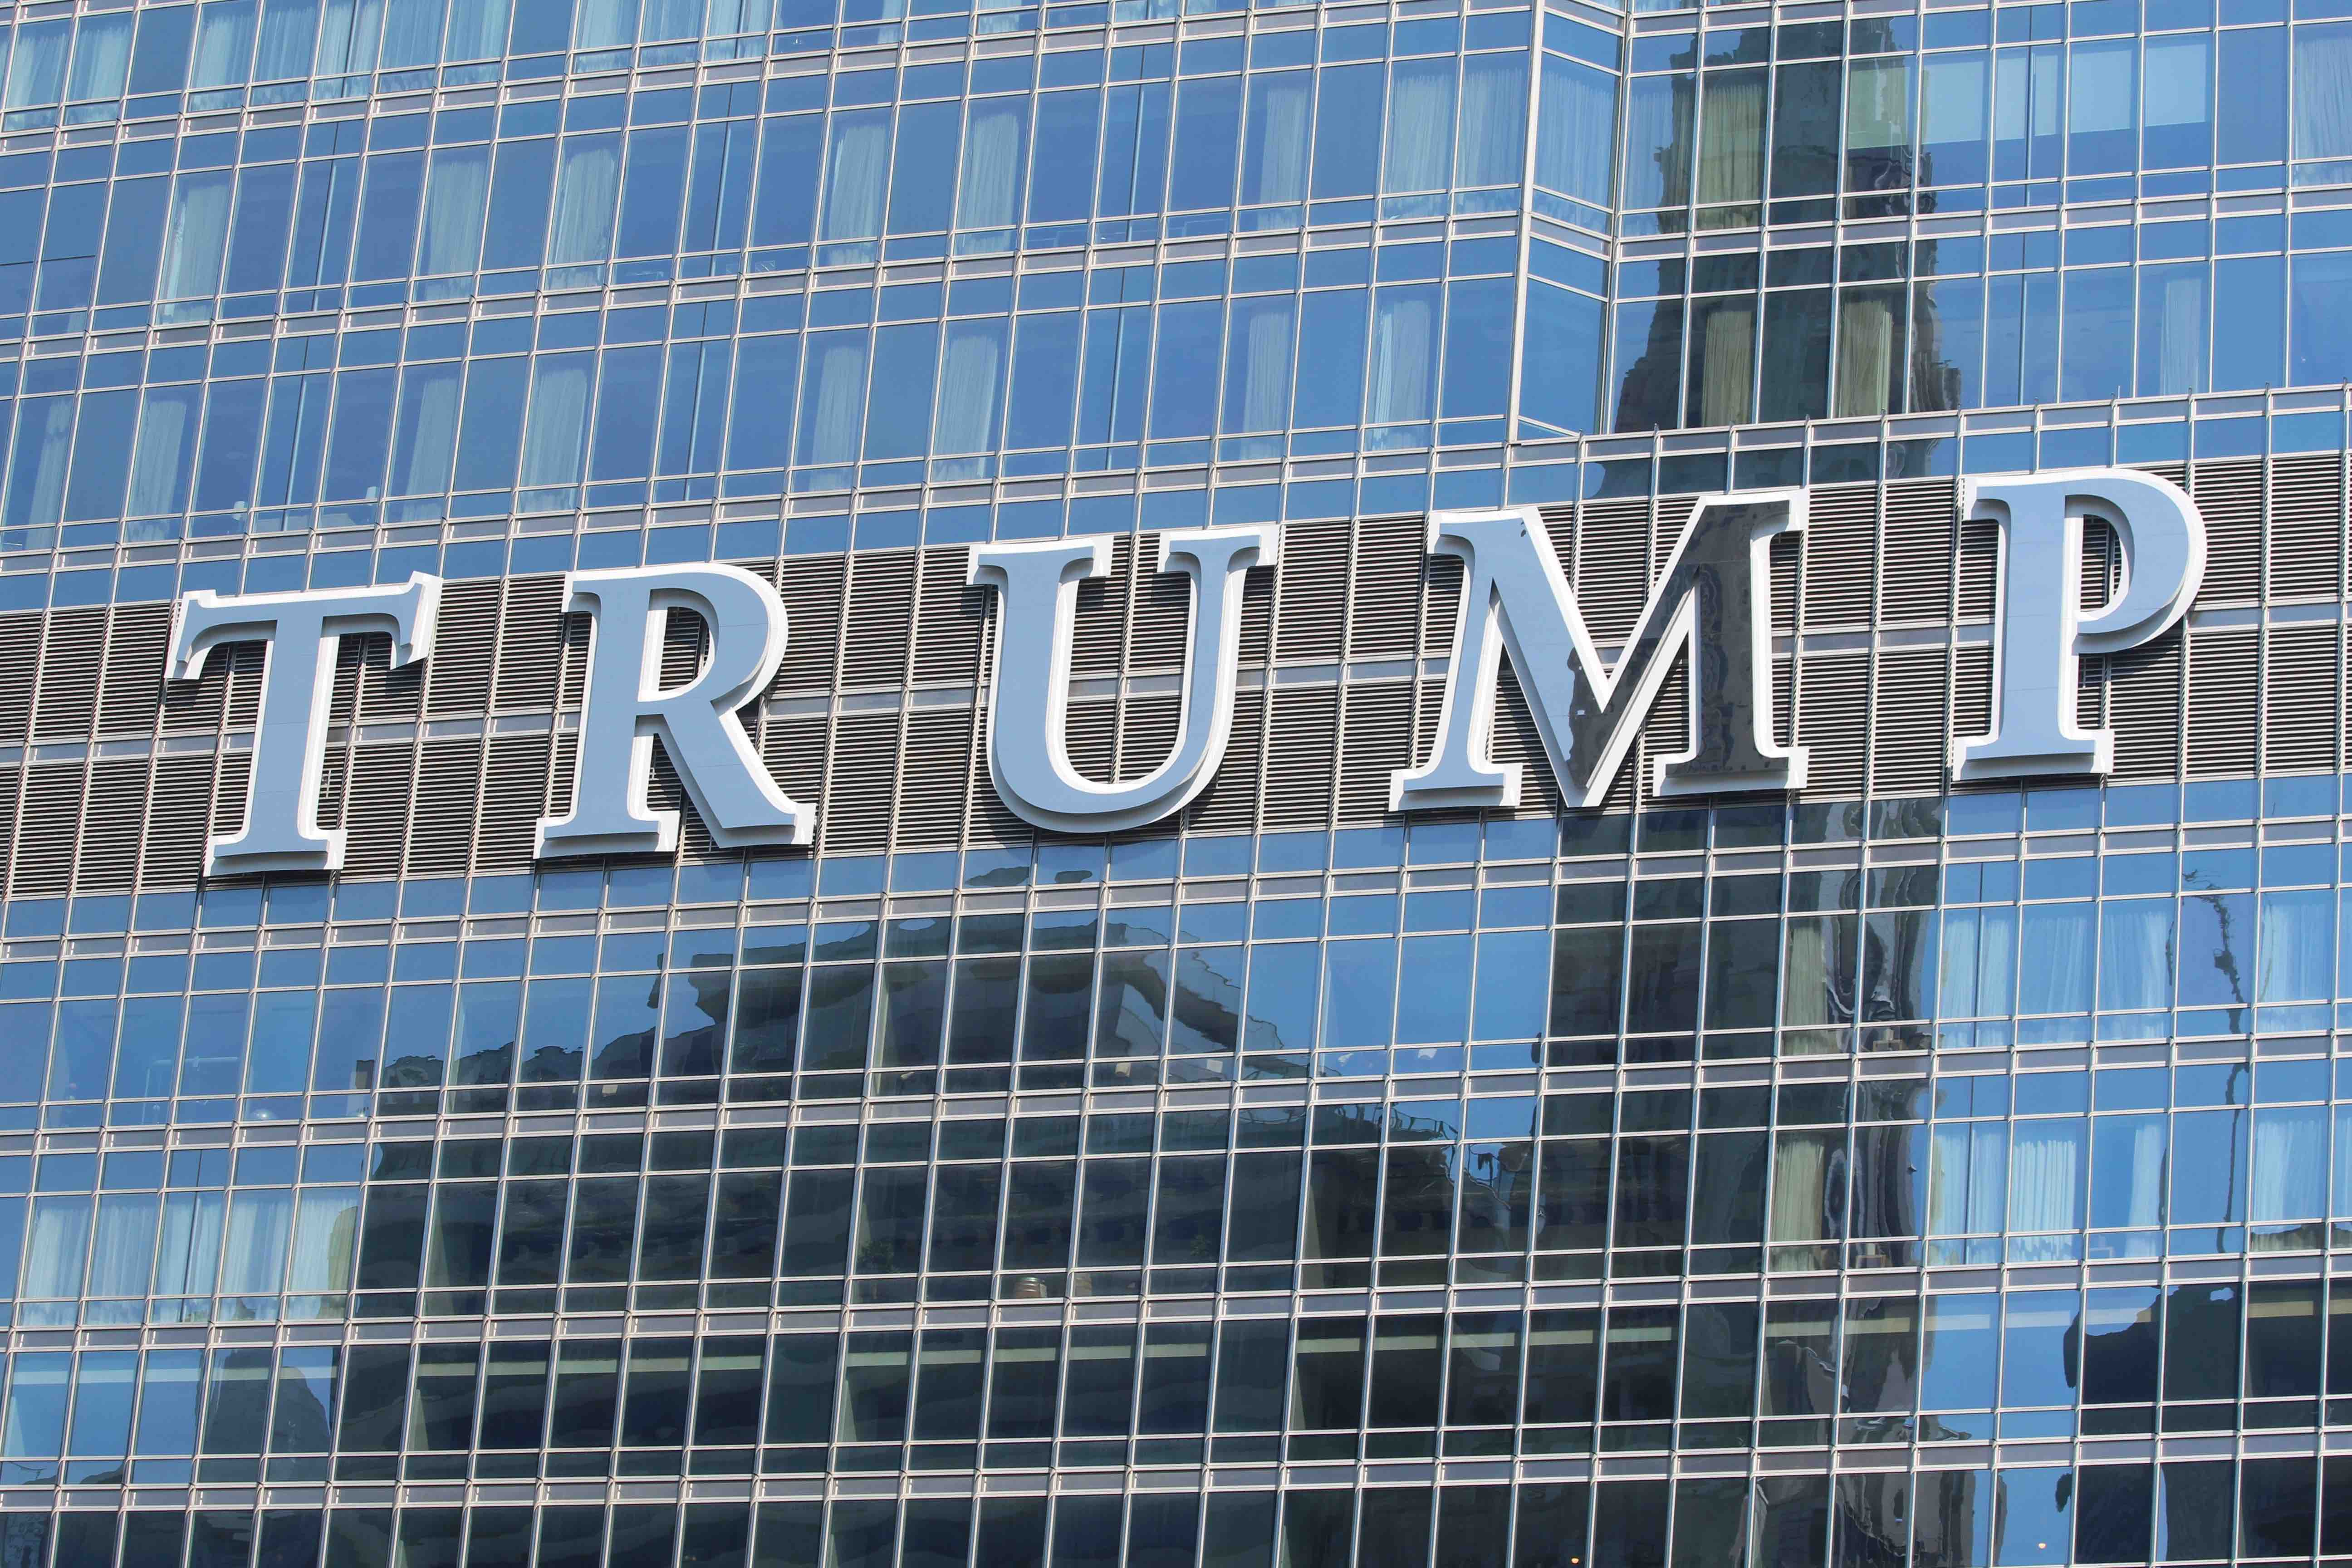 trump tower sign